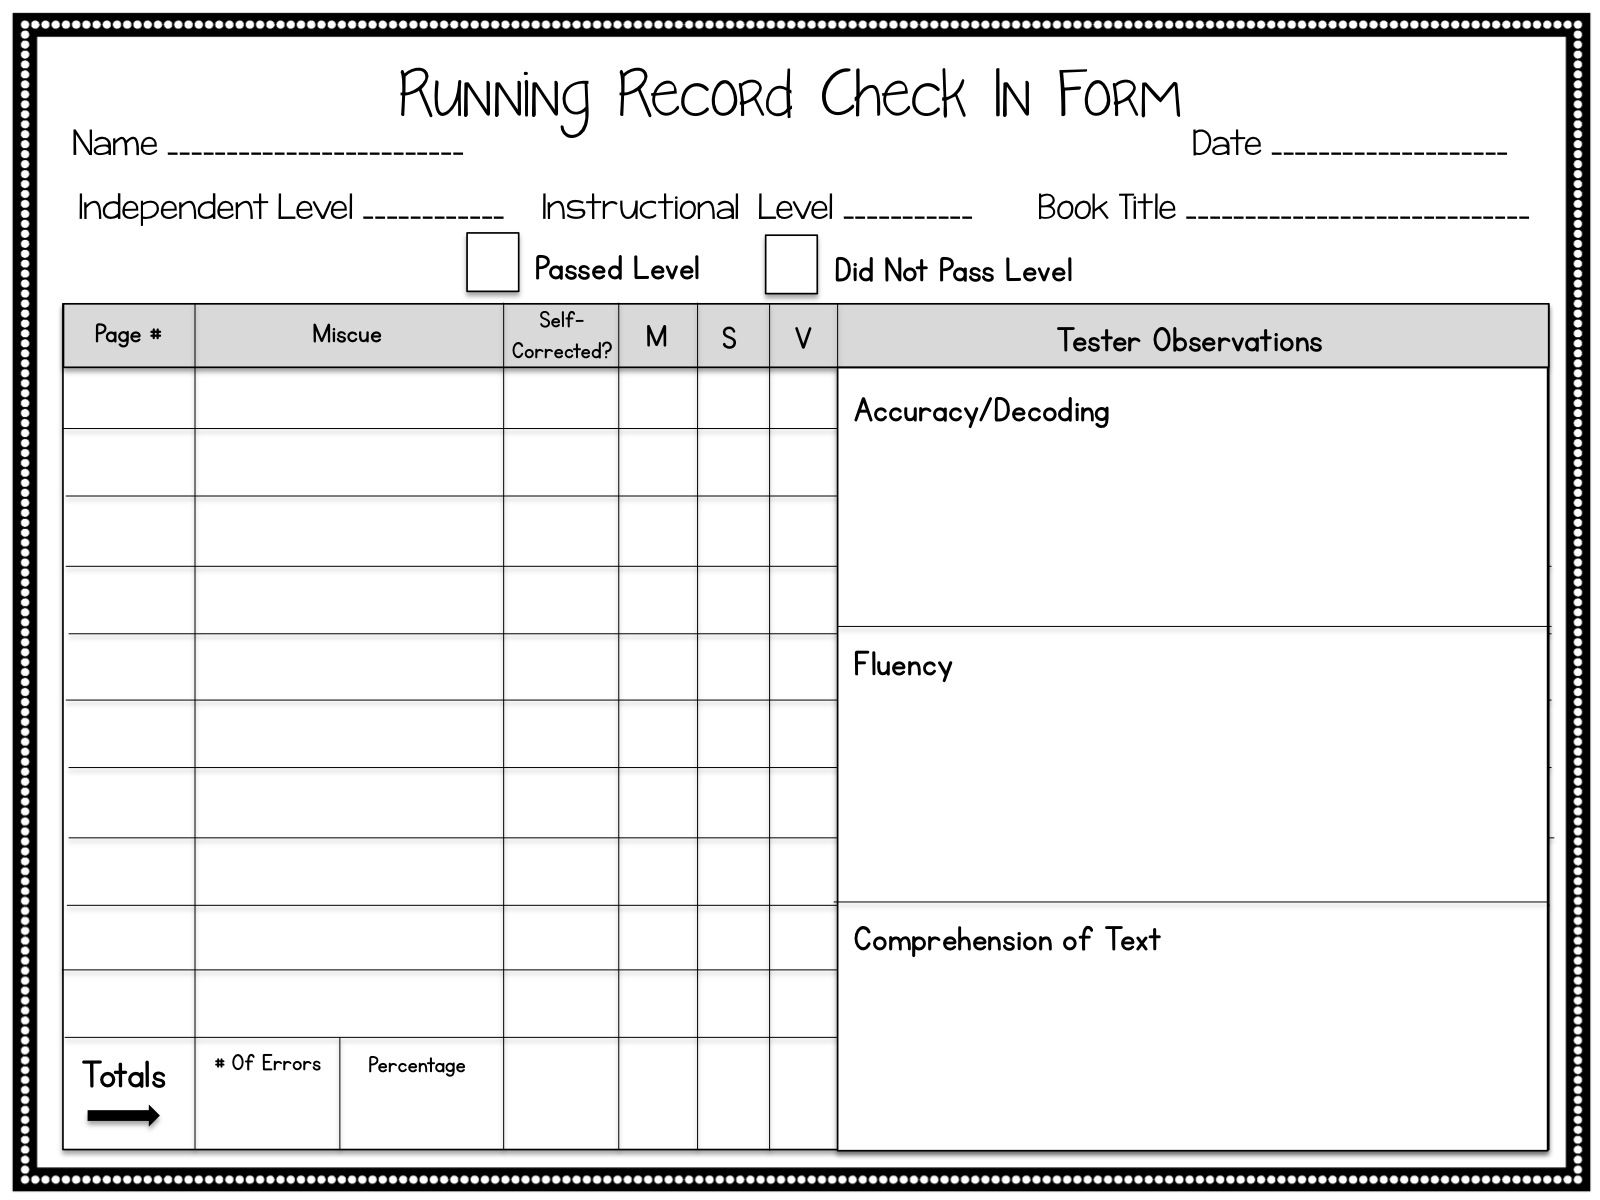 Informal Running Record Form Part Of Huge Guided Reading Bundle Appropriate For Upper